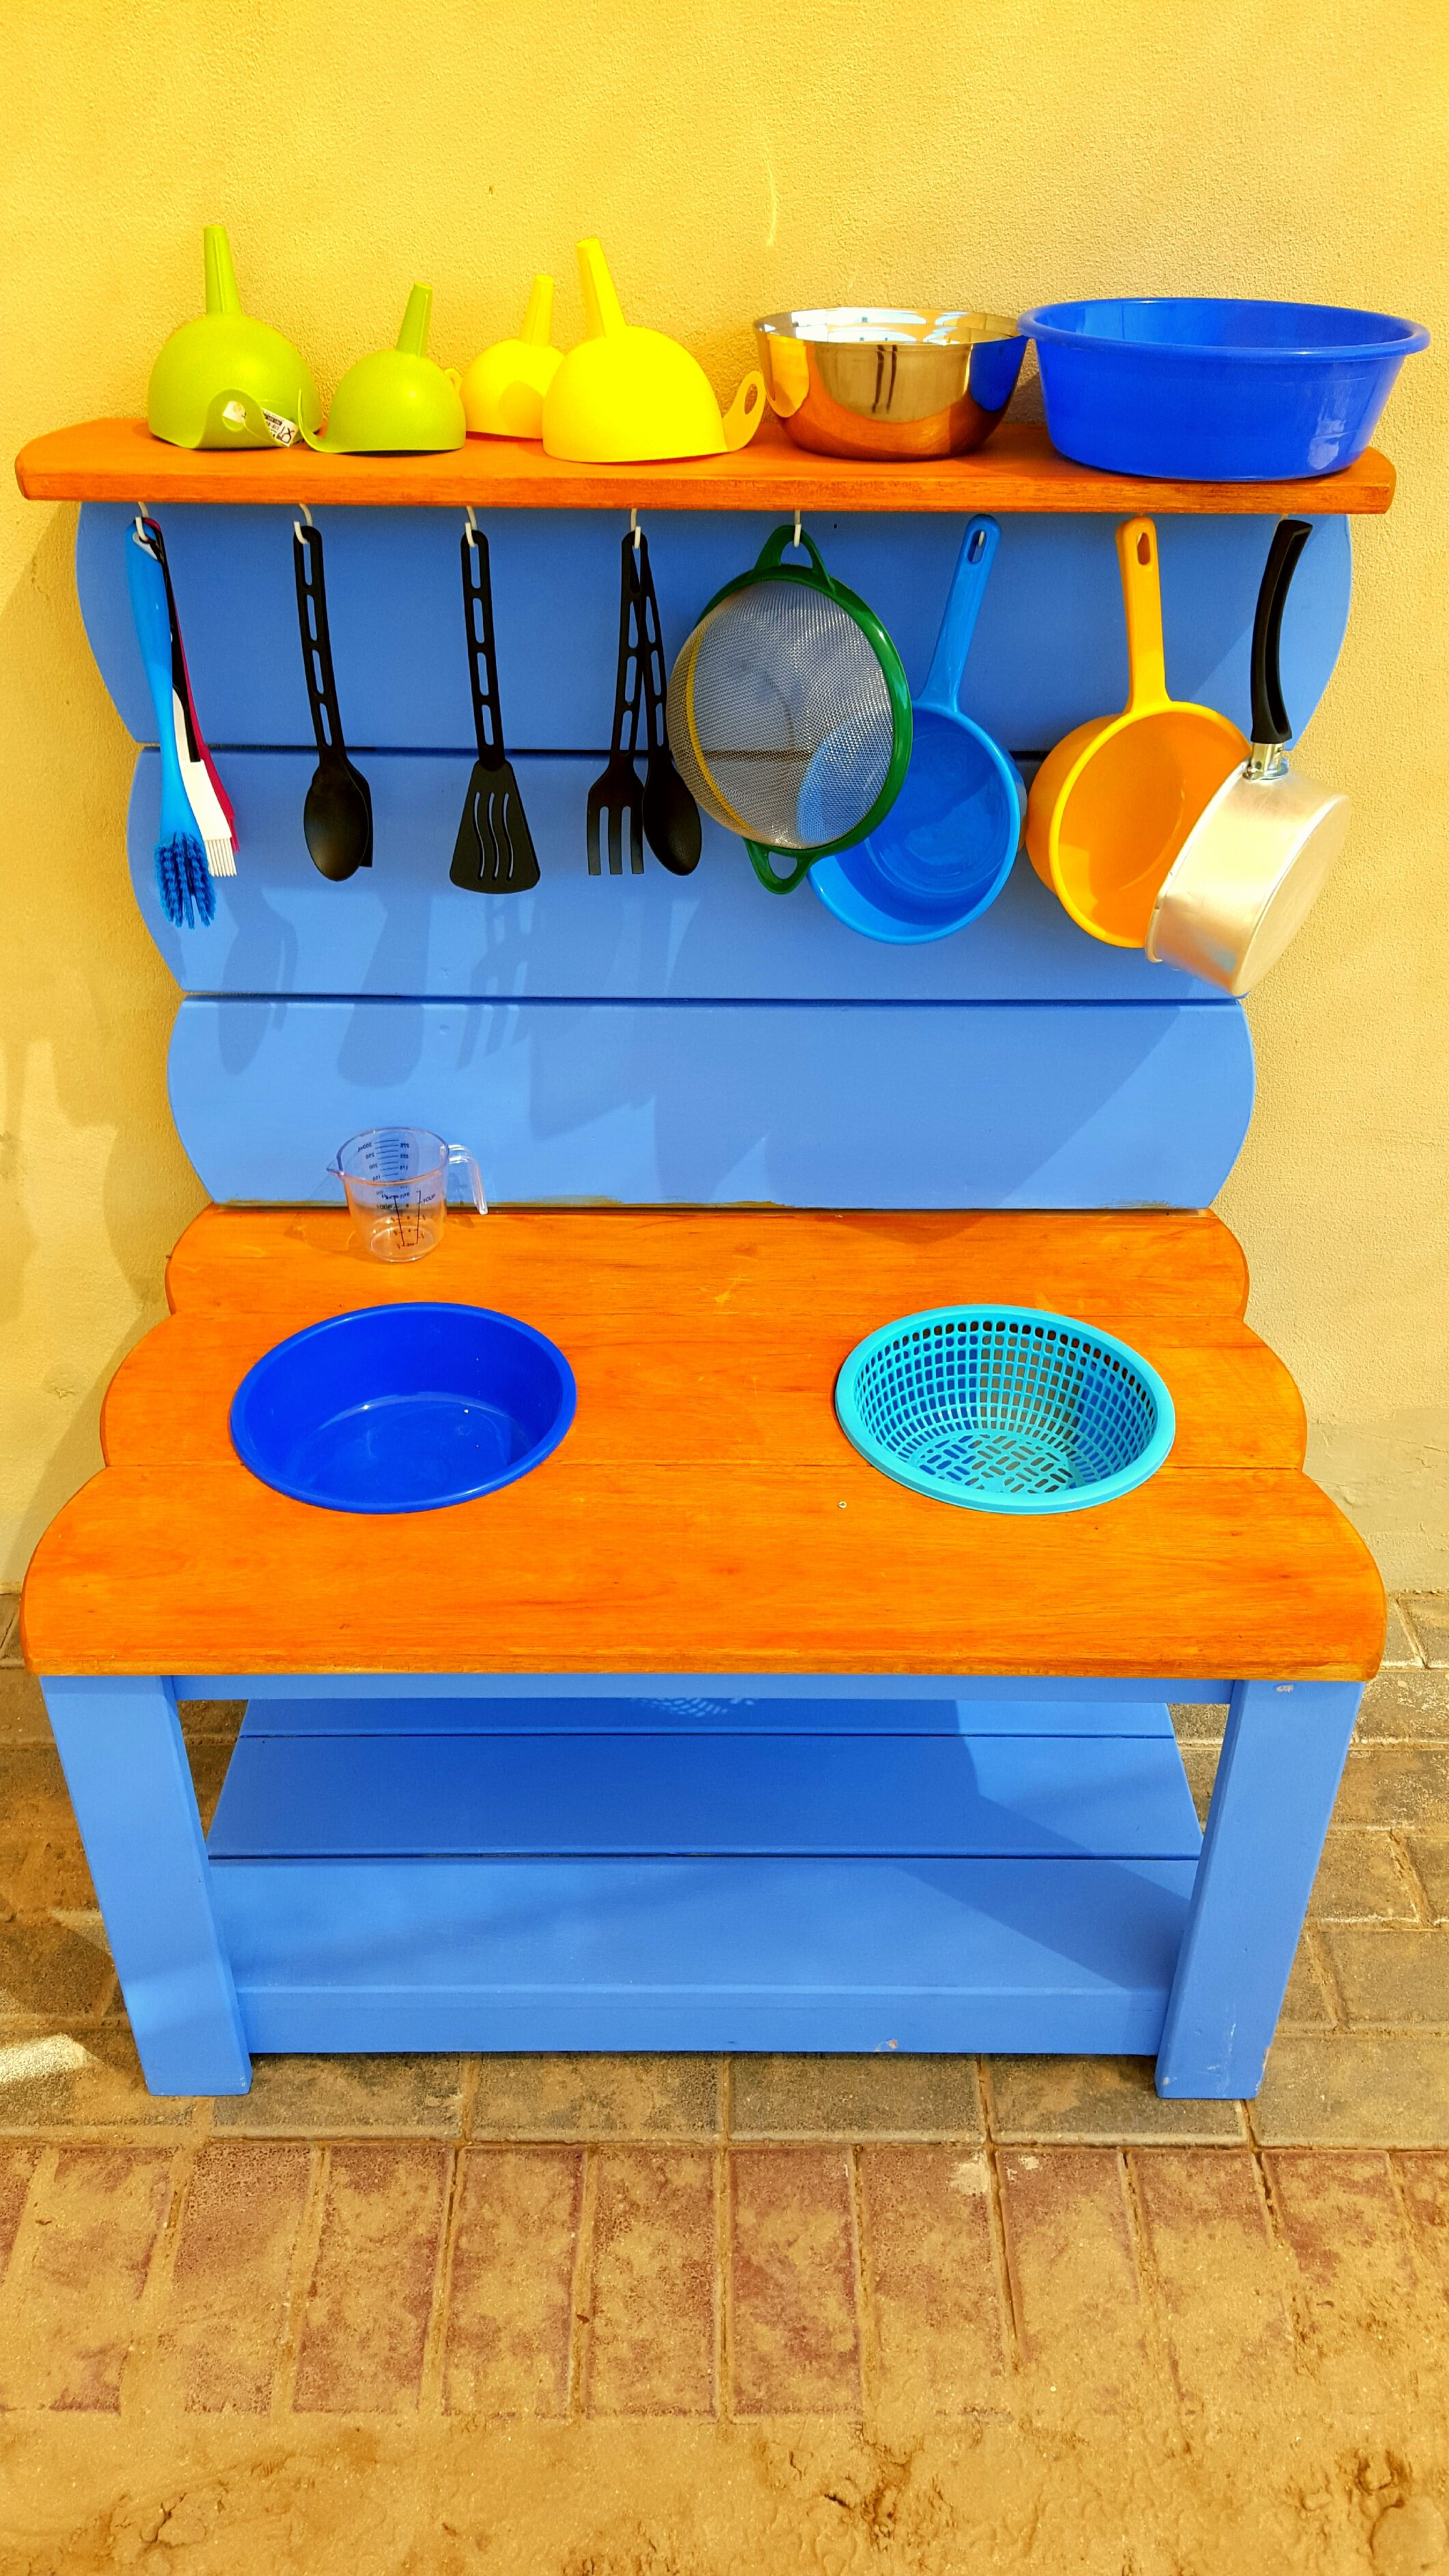 Our new mud kitchen for sensory play and learning. Read more about Sensory Play and Learning here on our nursery blog.